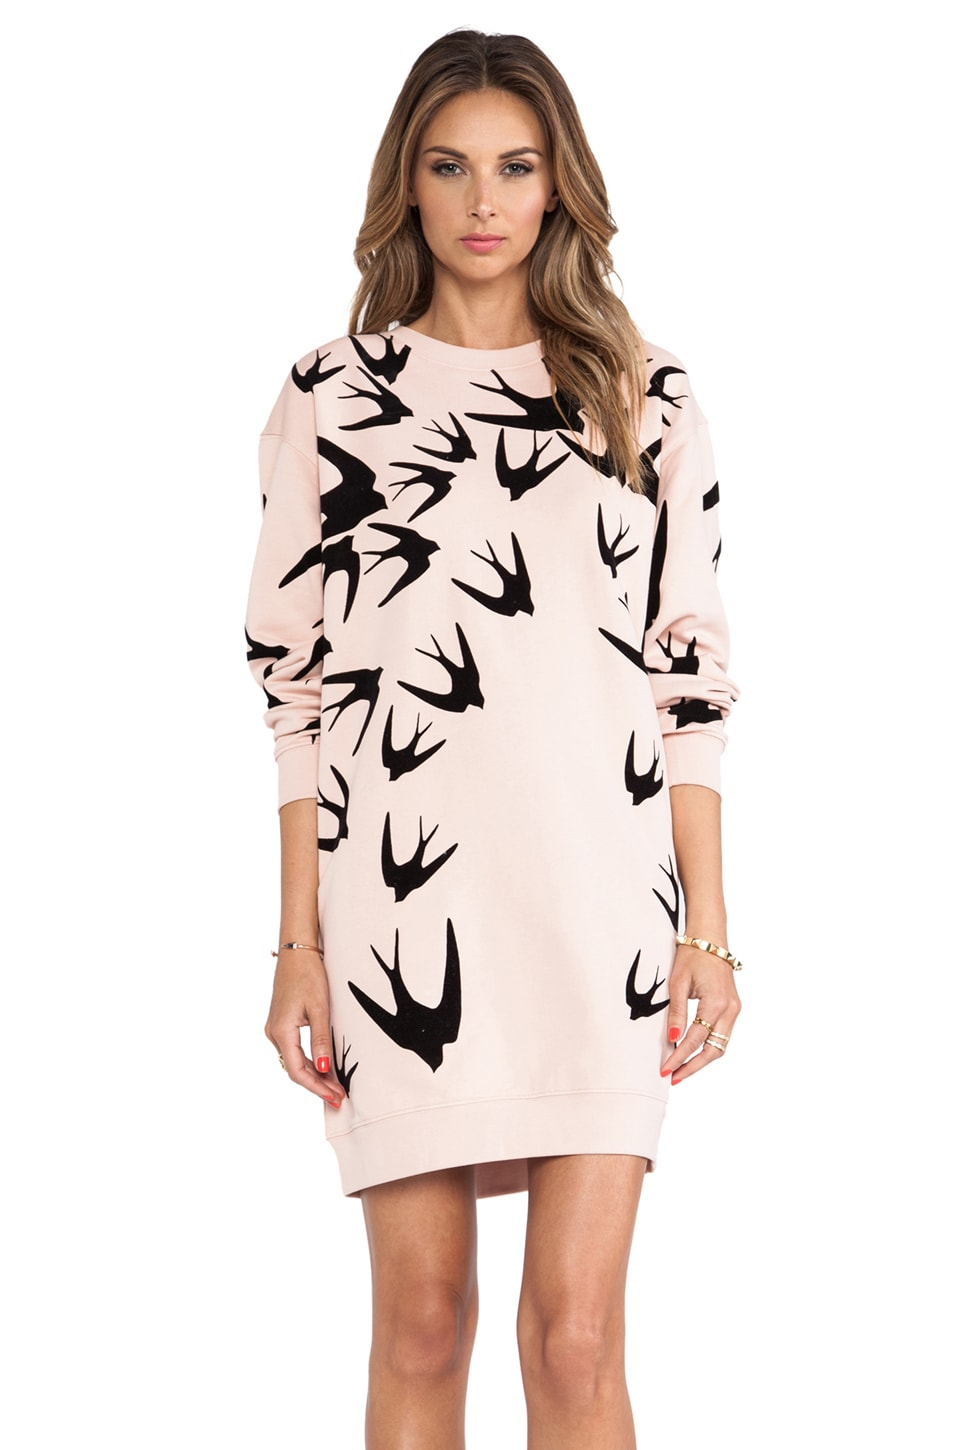 McQ Alexander McQueen Sweatshirt Dress in Tea Rose